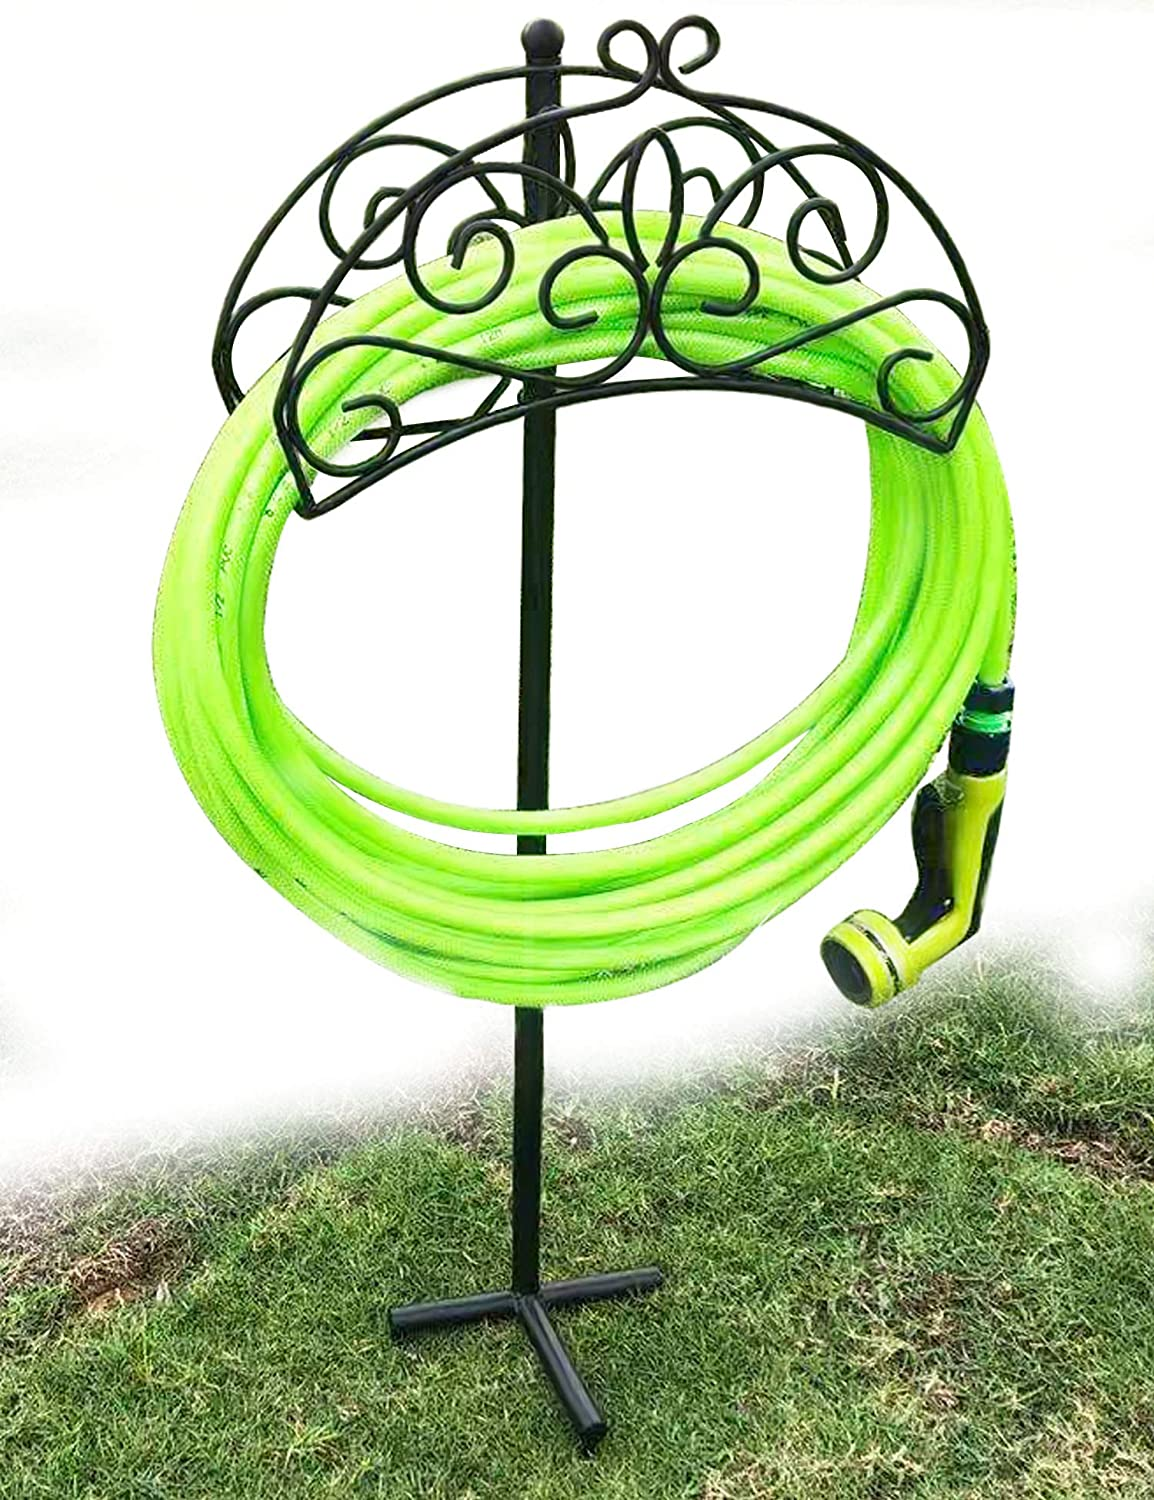 TREEZITEK Free Standing Hose Reel Garden Hose Holder Metal Decorative Sturdy Attractive Hose Storage Stand for Yard